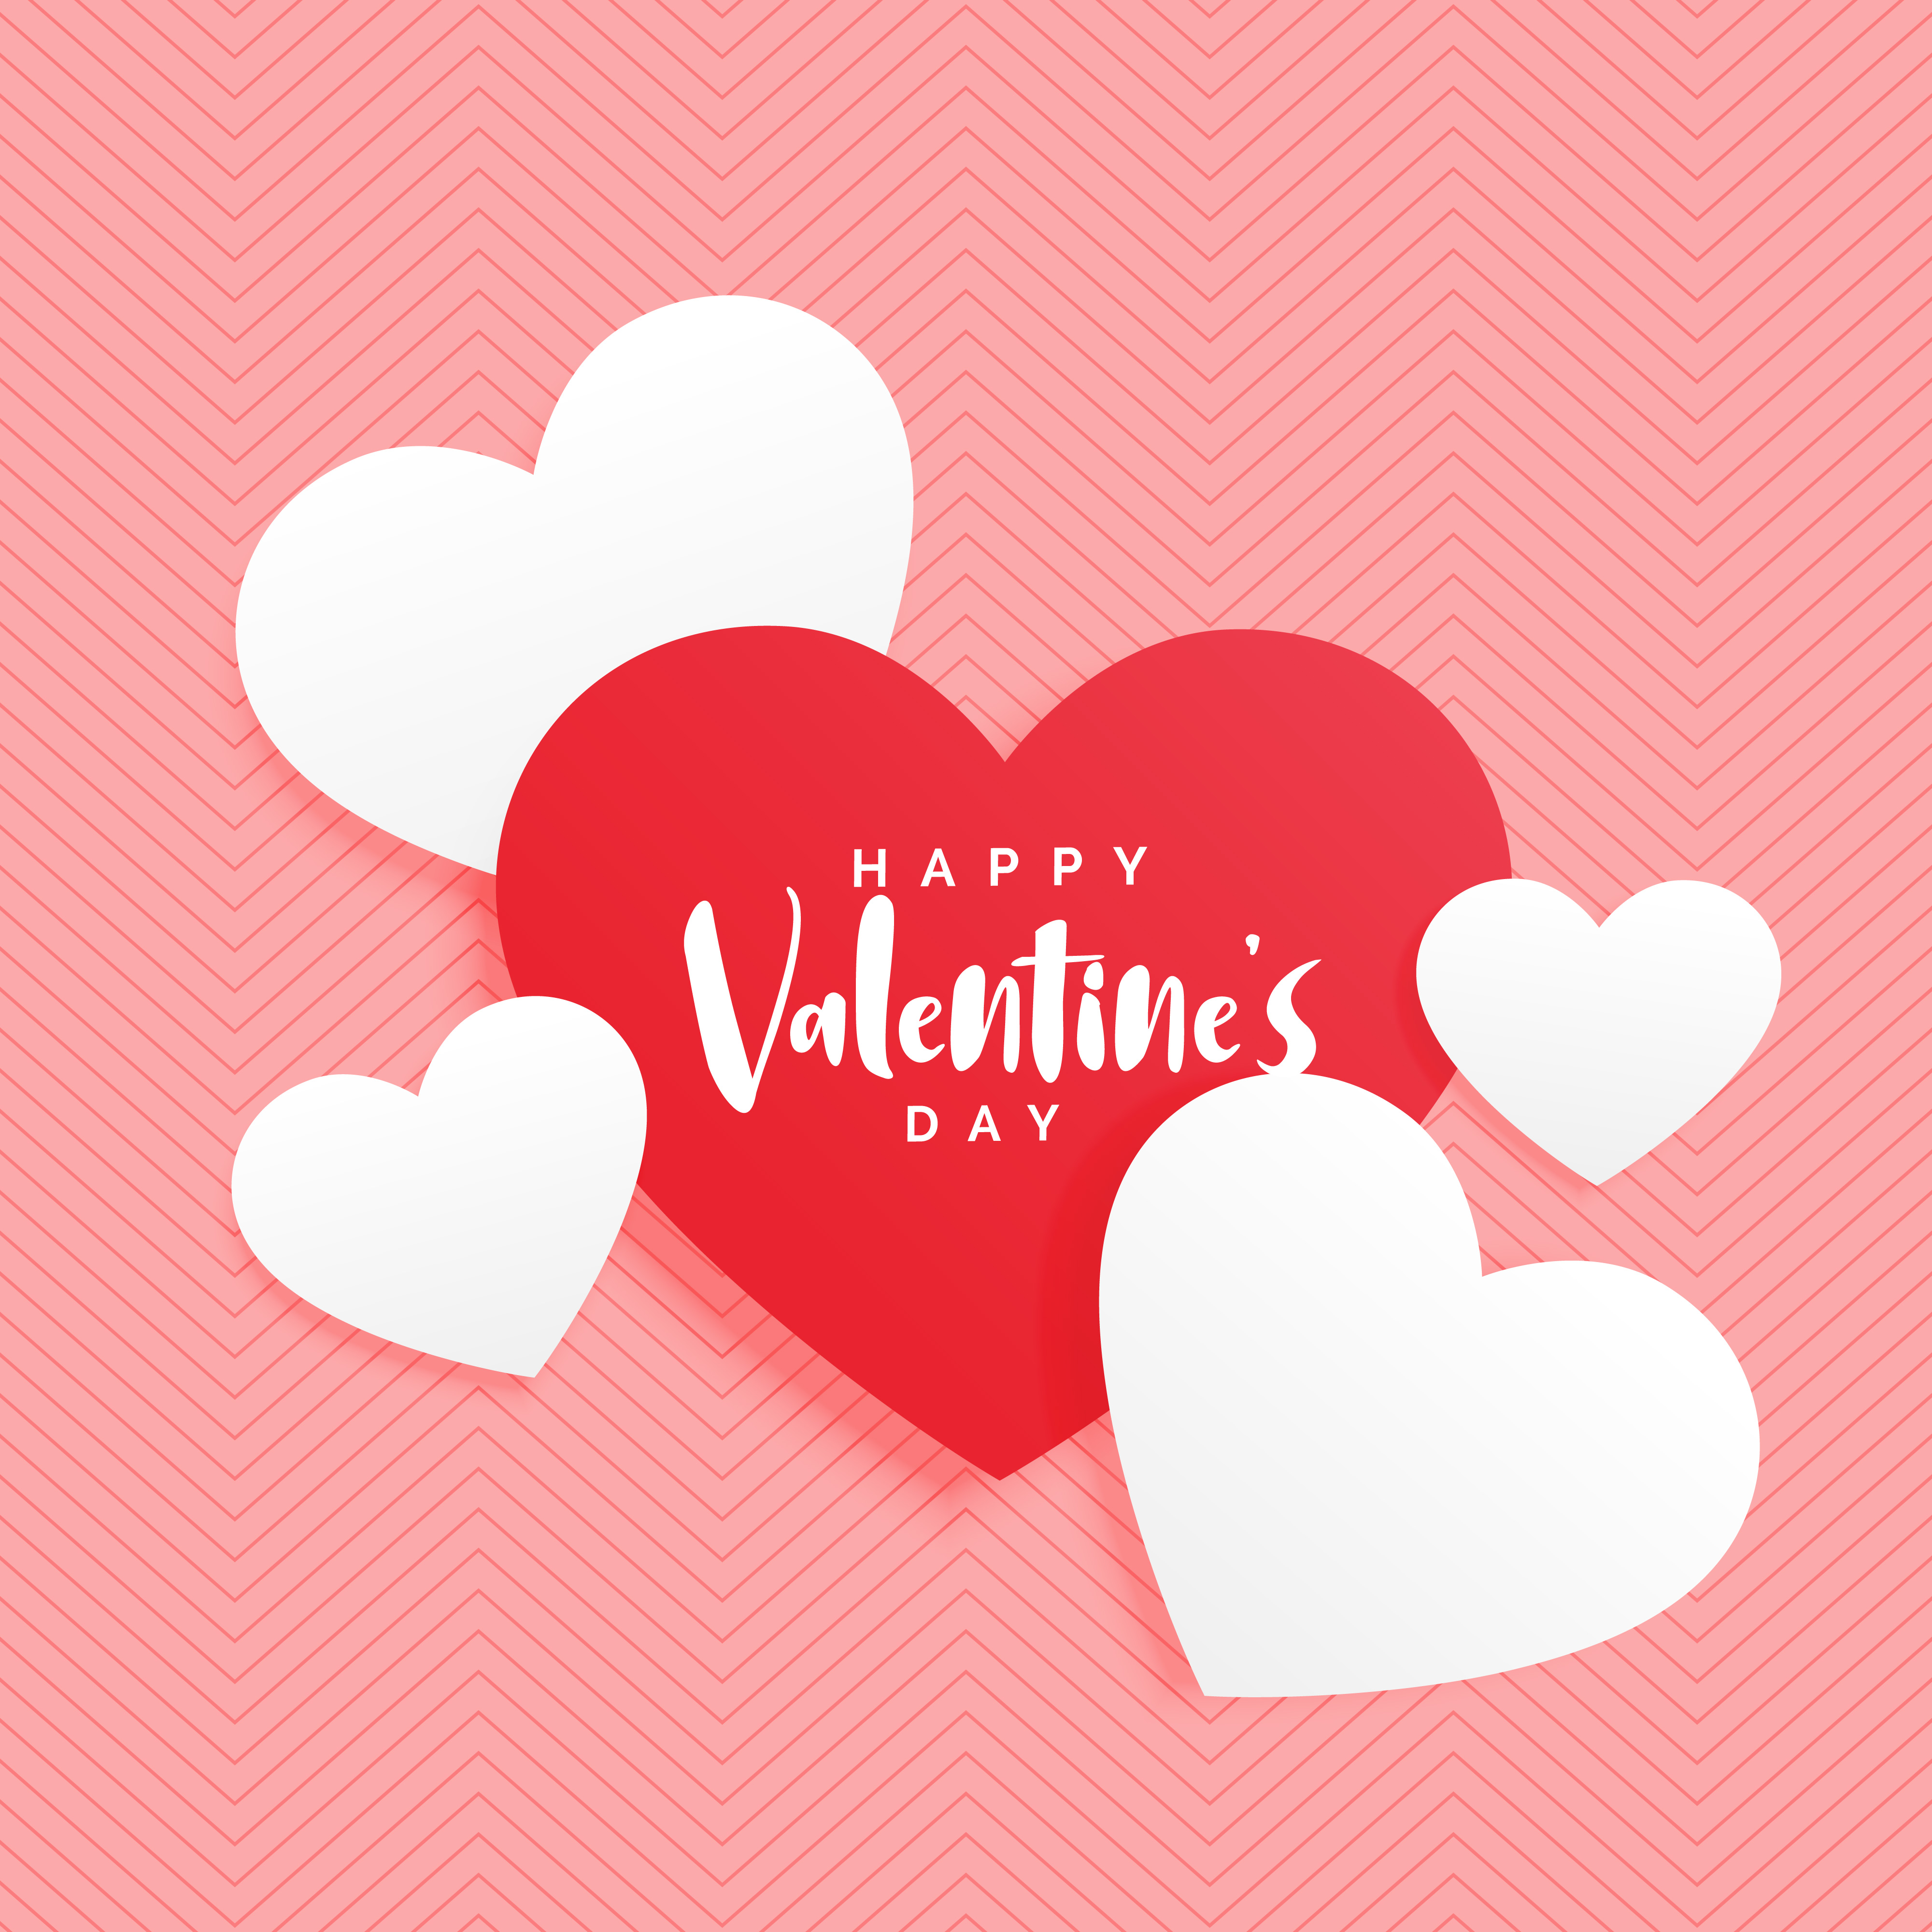 elegant valentine's day red and white heart background ... - photo#12